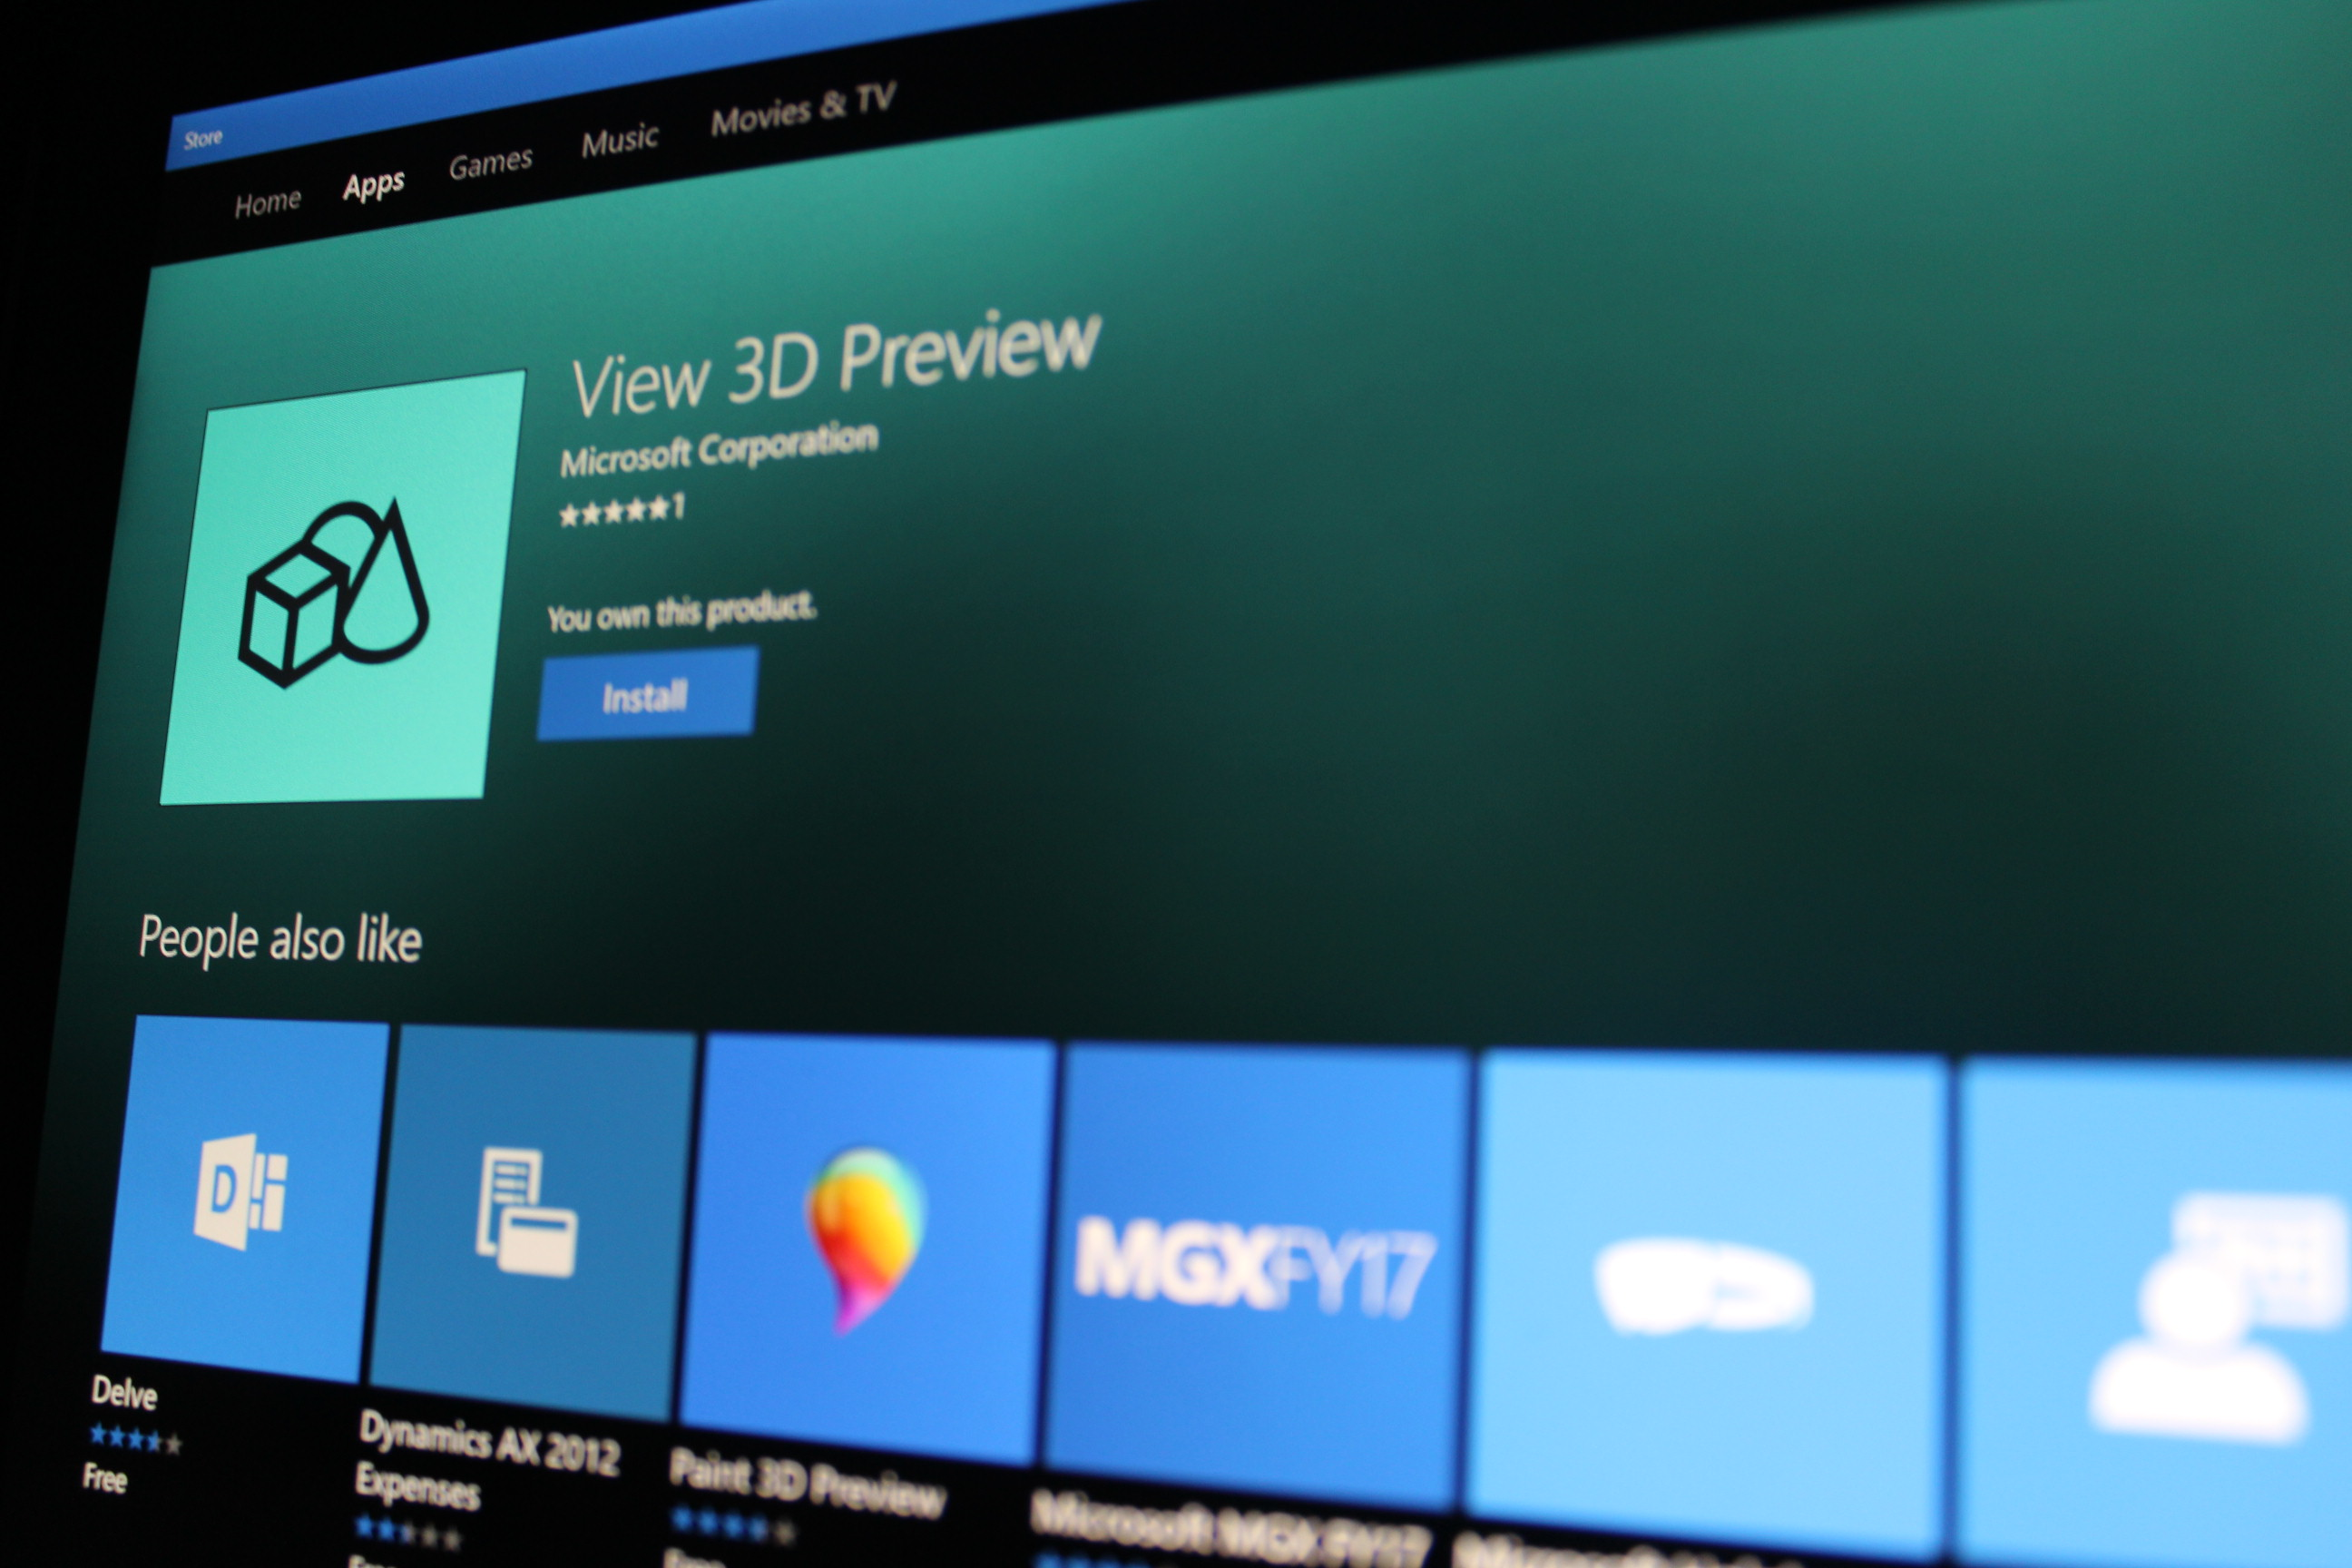 microsoft releases view 3d preview app let you see your 3d models. Black Bedroom Furniture Sets. Home Design Ideas